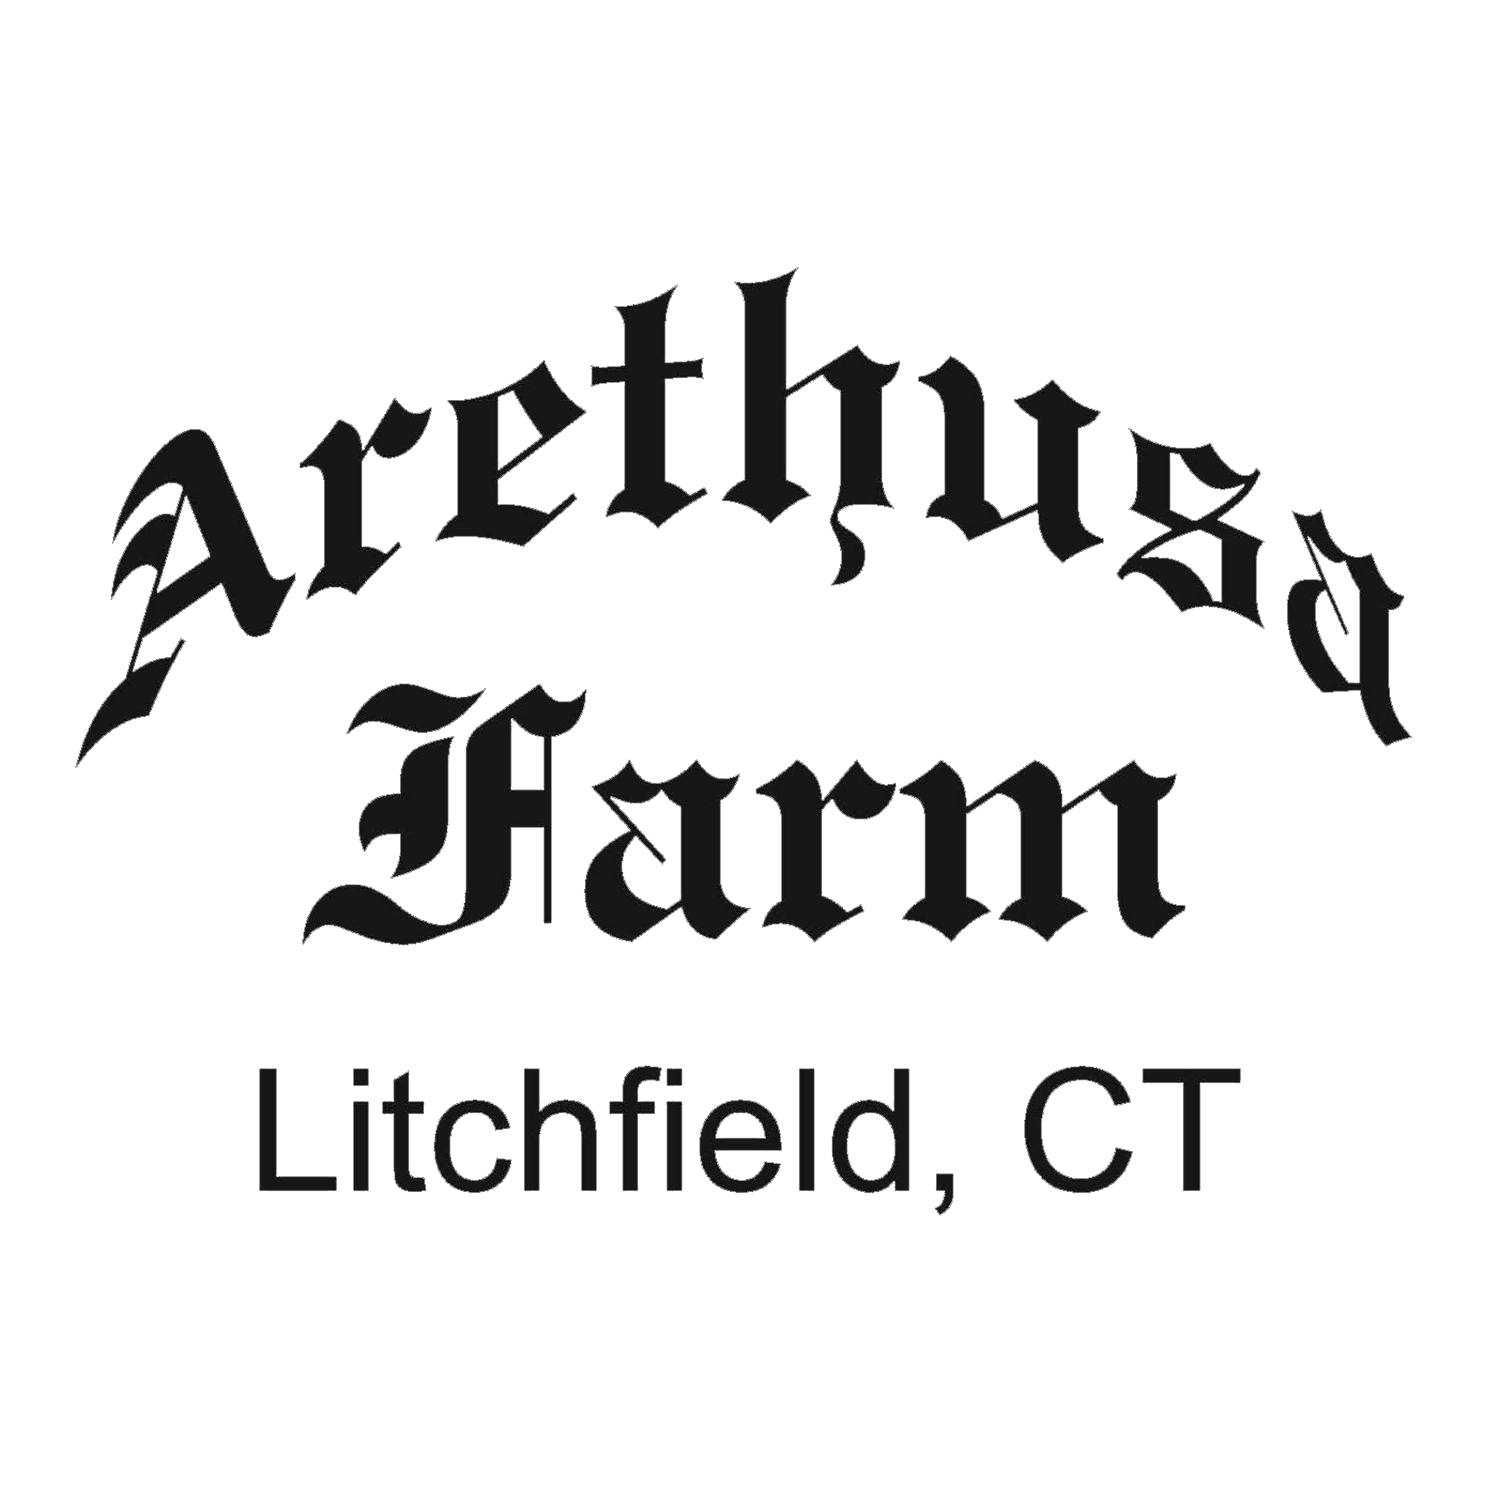 Arethusa Farm | Farm in Litchfield, CT | Dairy | Restaurant & Cafe